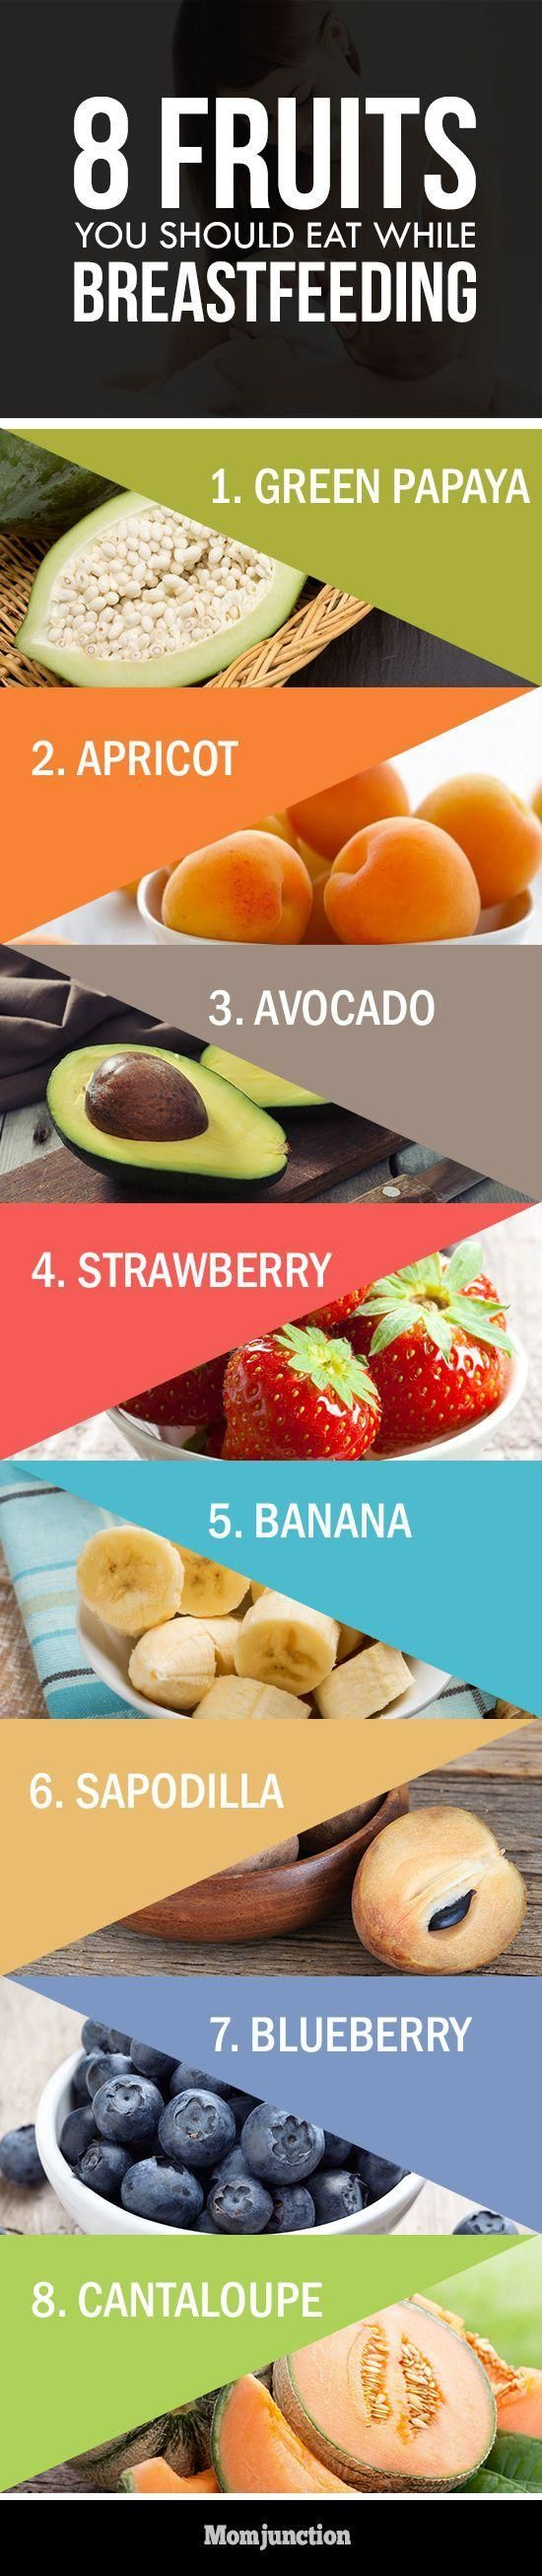 8 Best Fruits To Eat While Breastfeeding